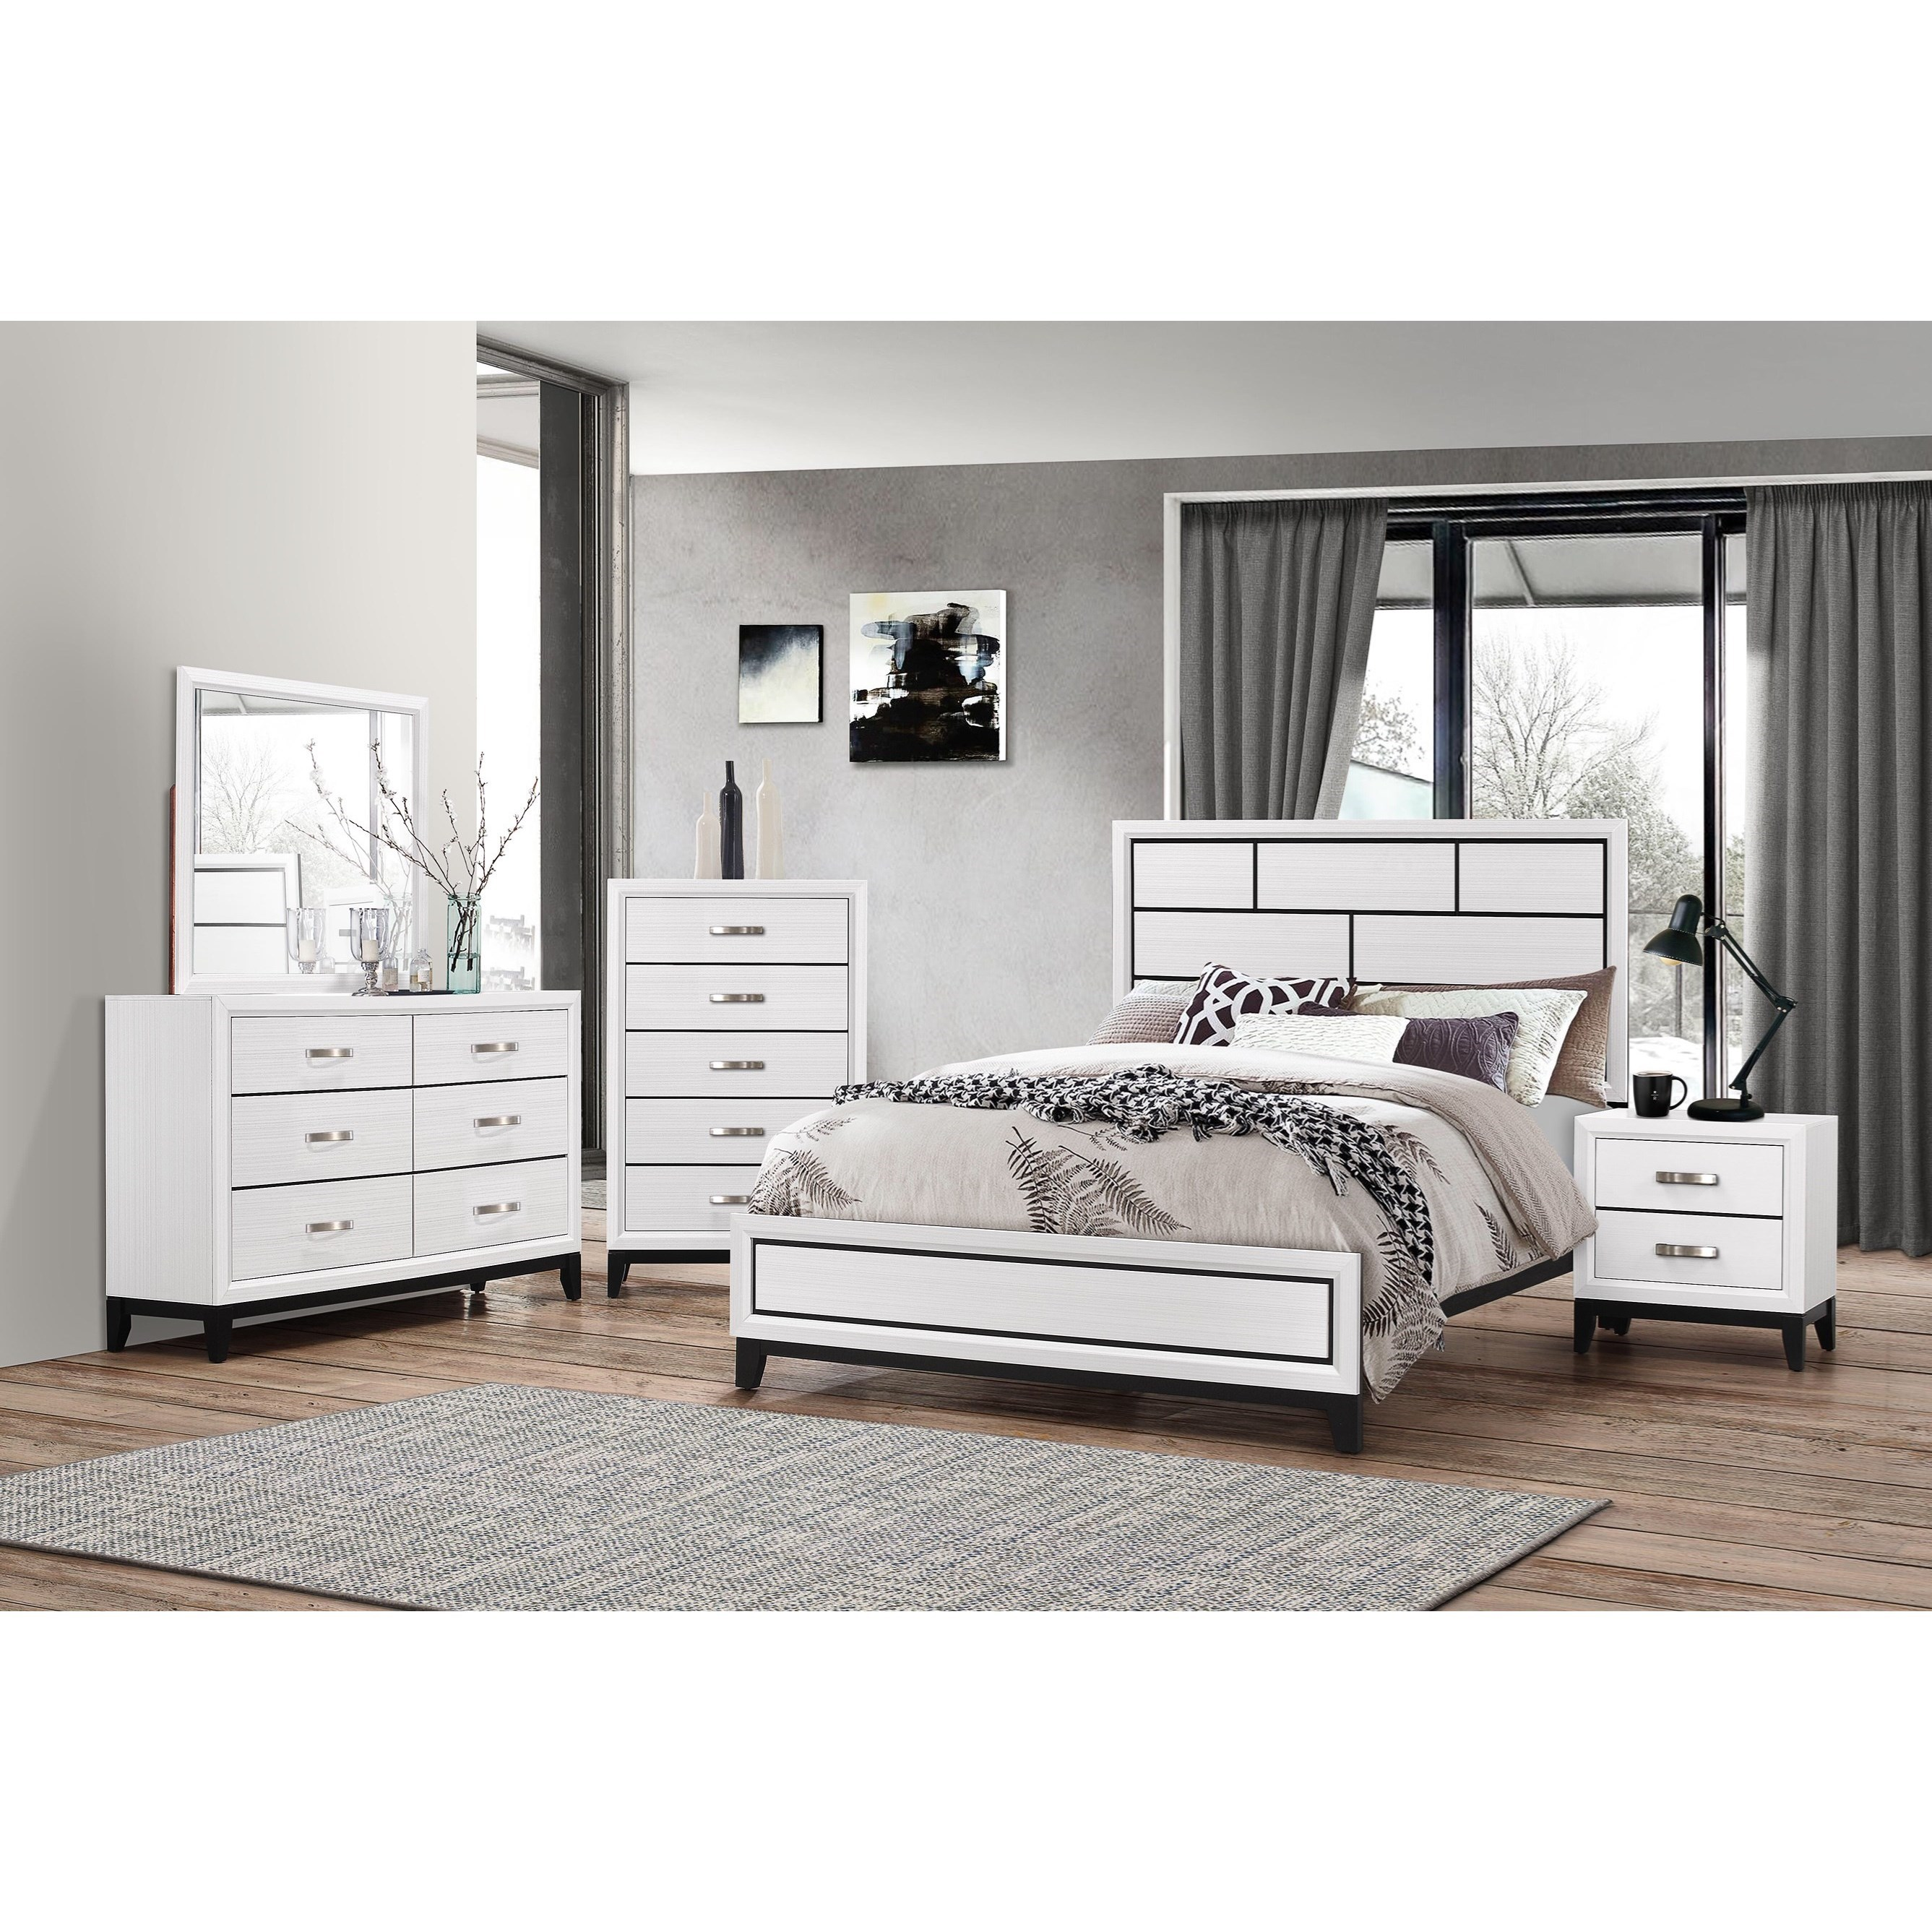 Akerson Queen Bedroom Group by Crown Mark at Catalog Outlet